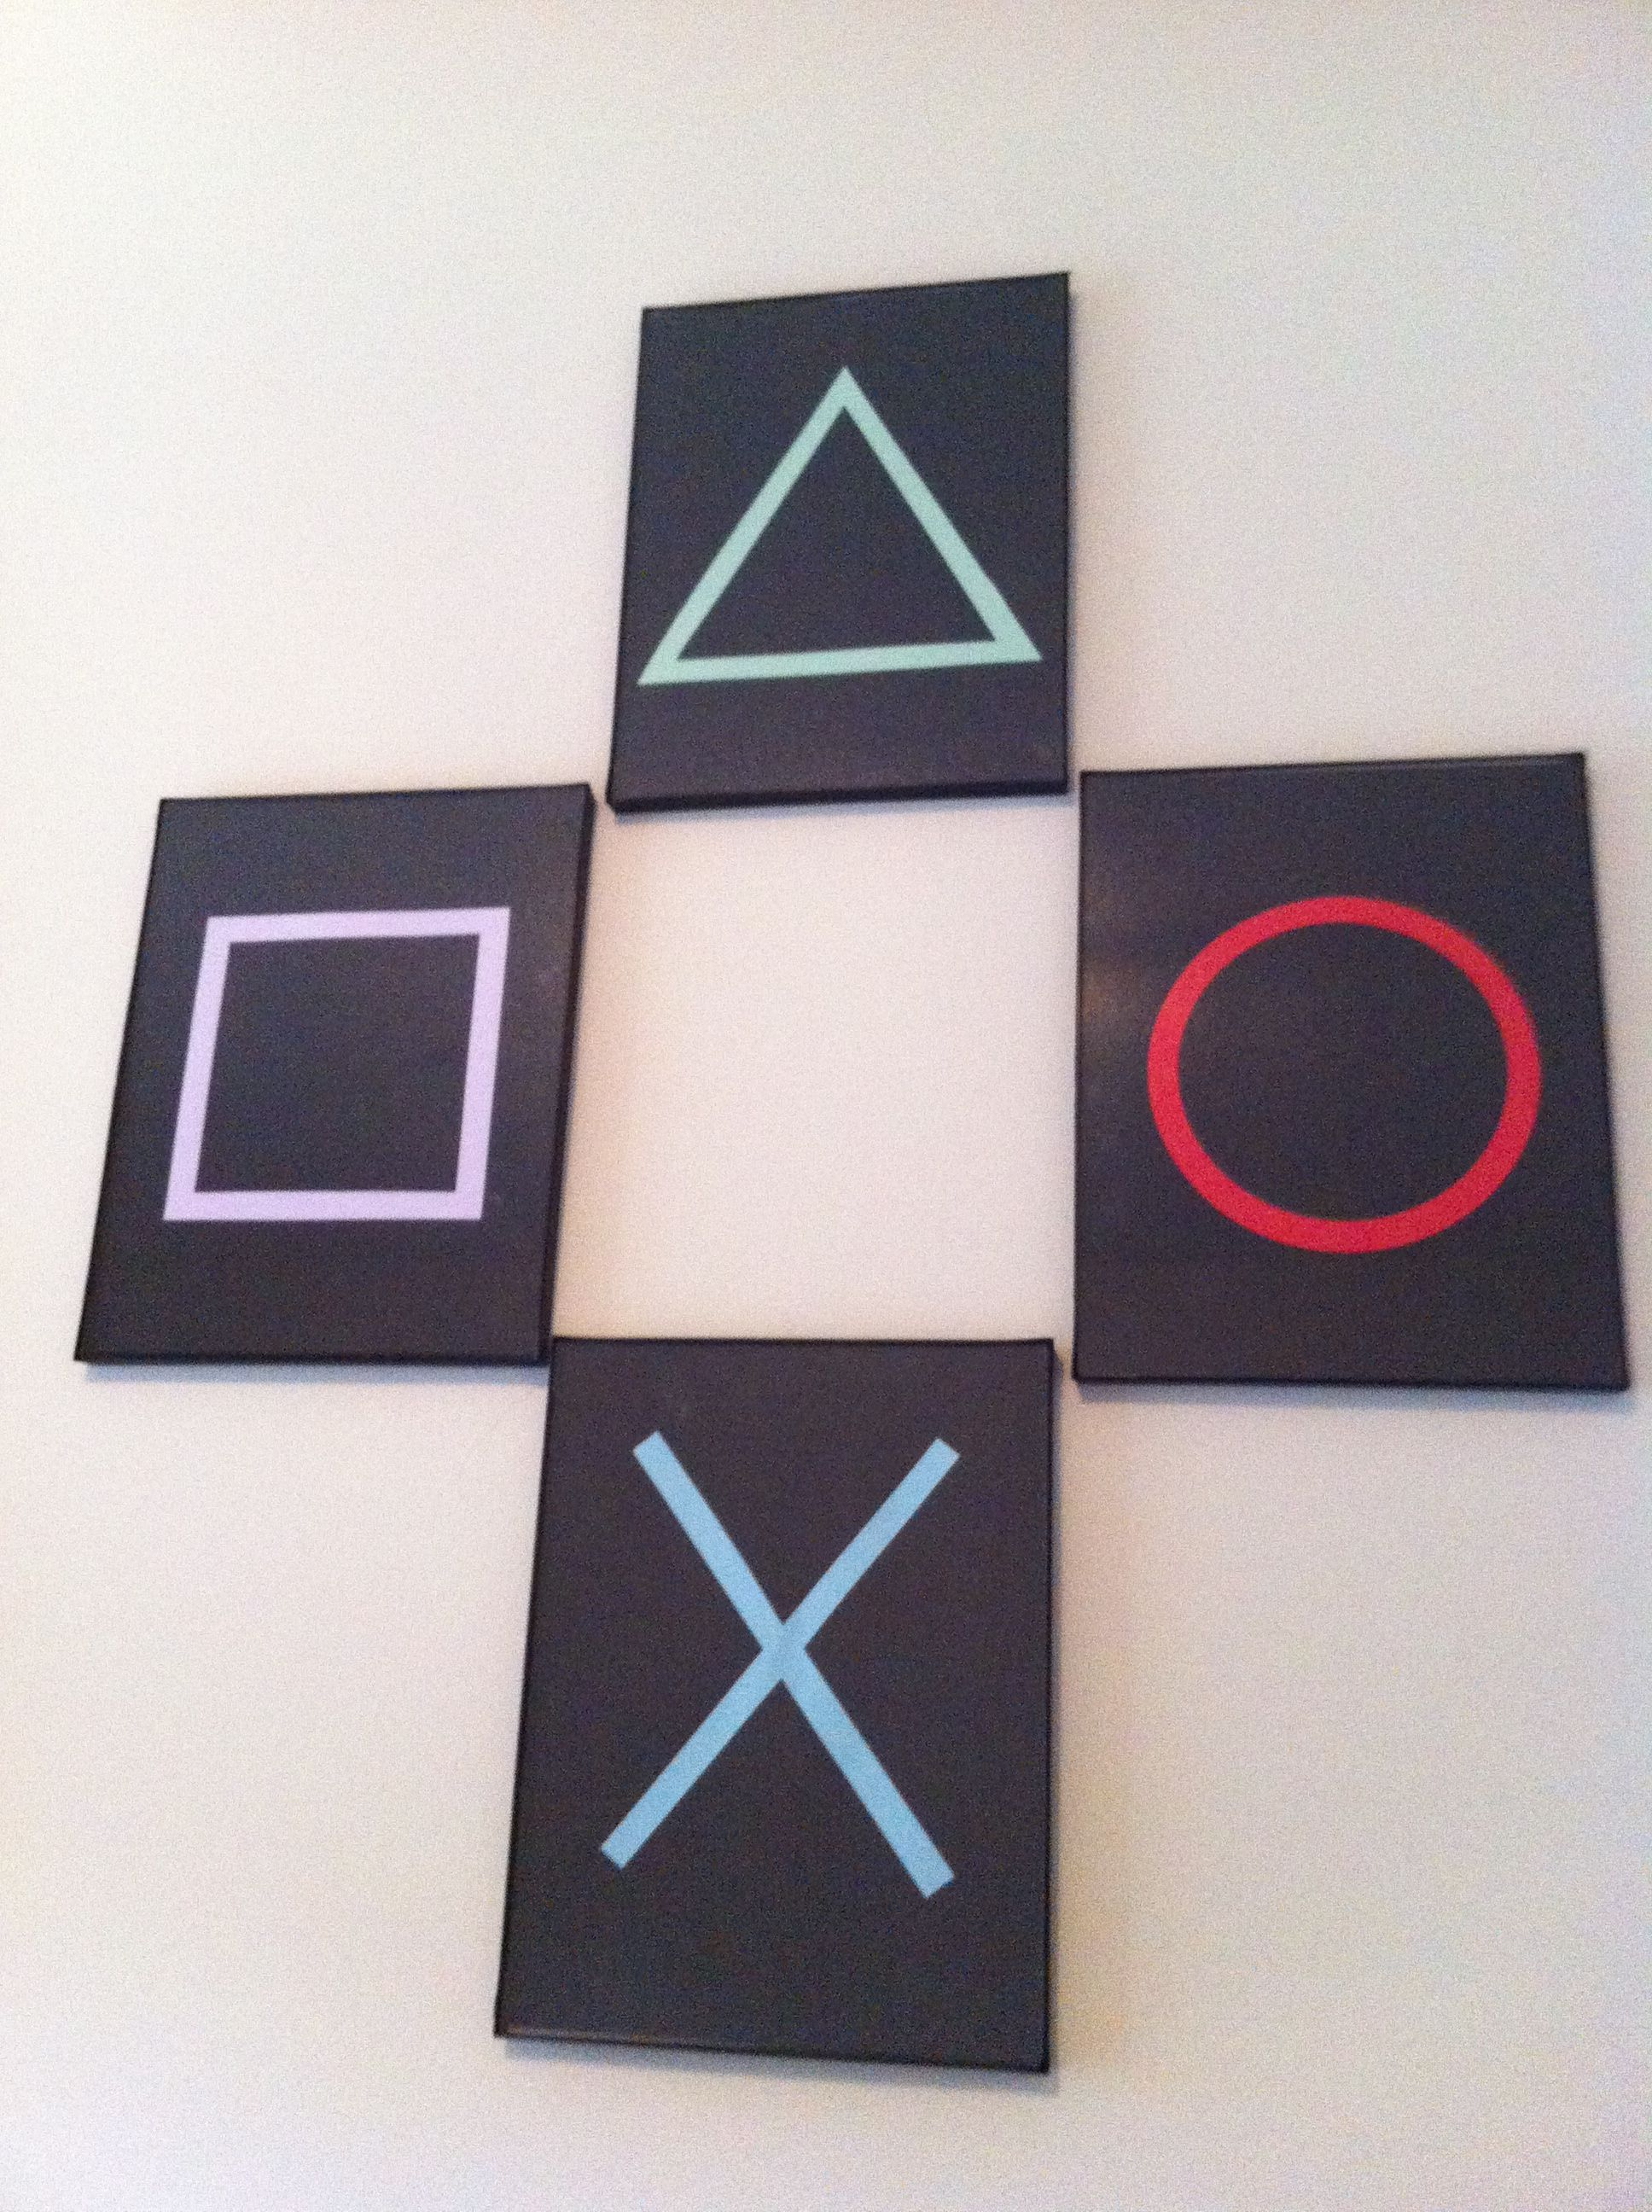 Playstation Inspired Wall Art Frames From The Dollar Store Cardstock On Hand Boys Room Wall Art Video Game Room Decor Boys Game Room